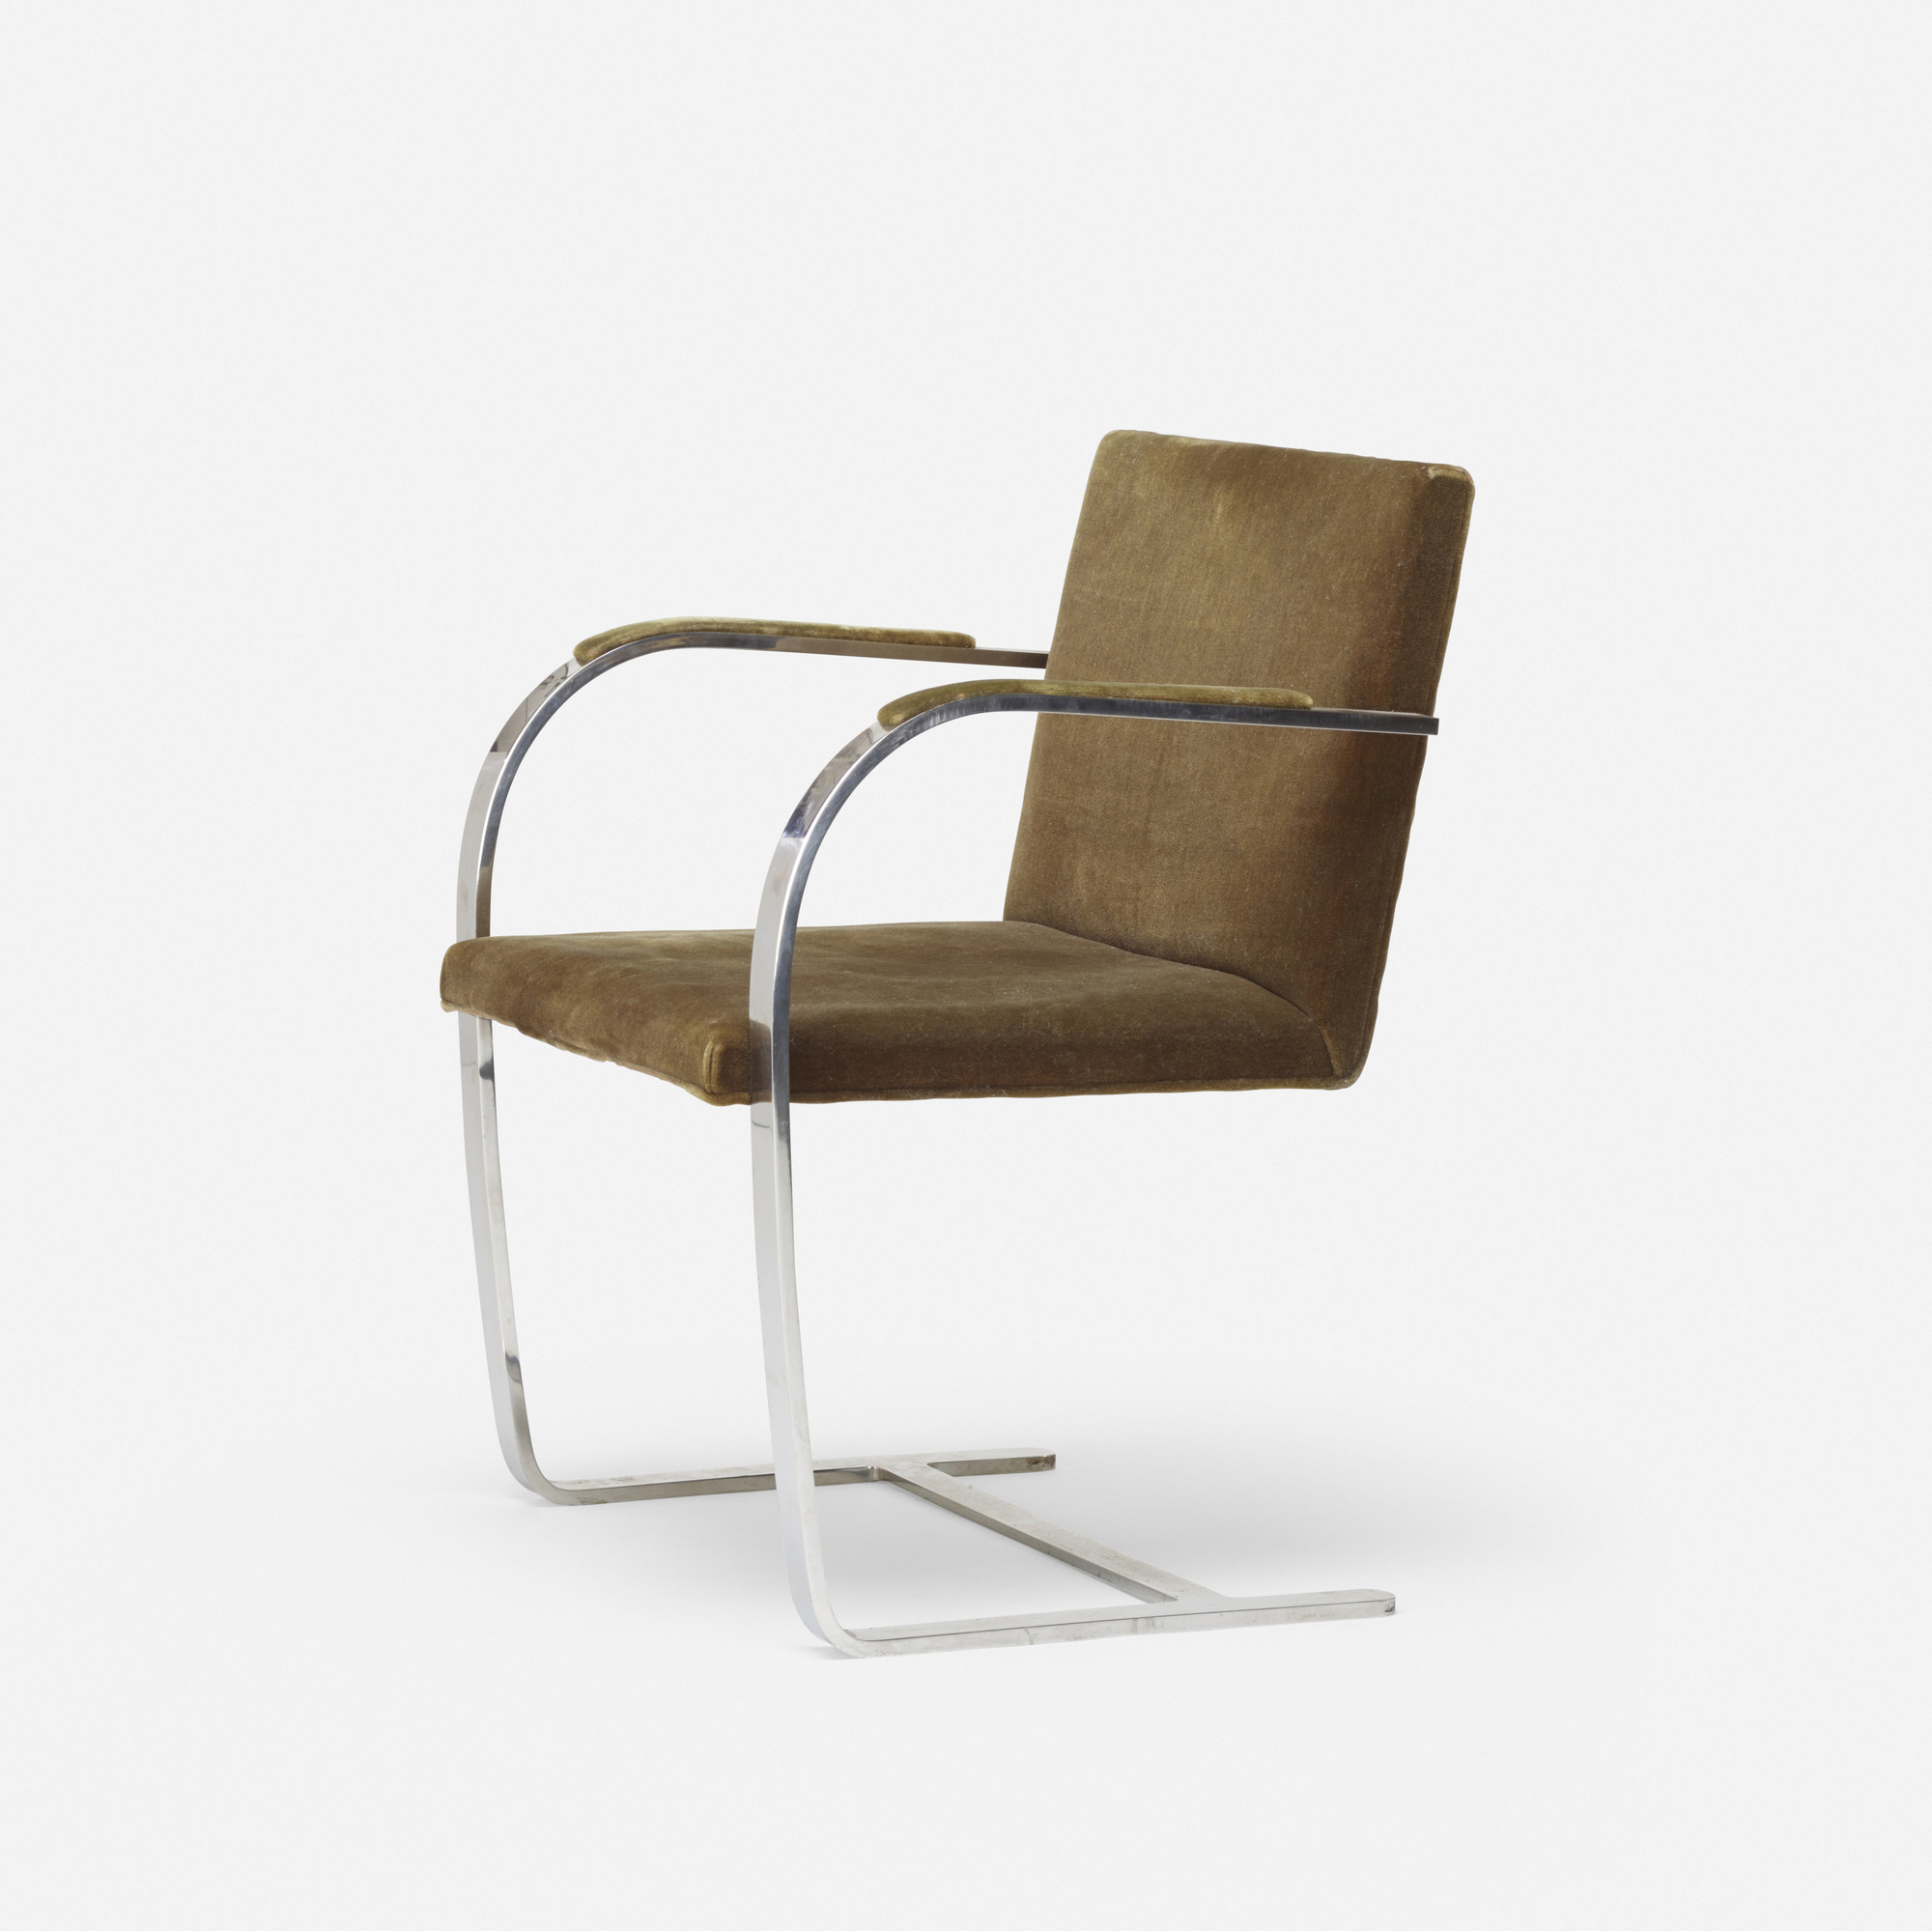 569: Ludwig Mies van der Rohe / Brno chair (1 of 2)